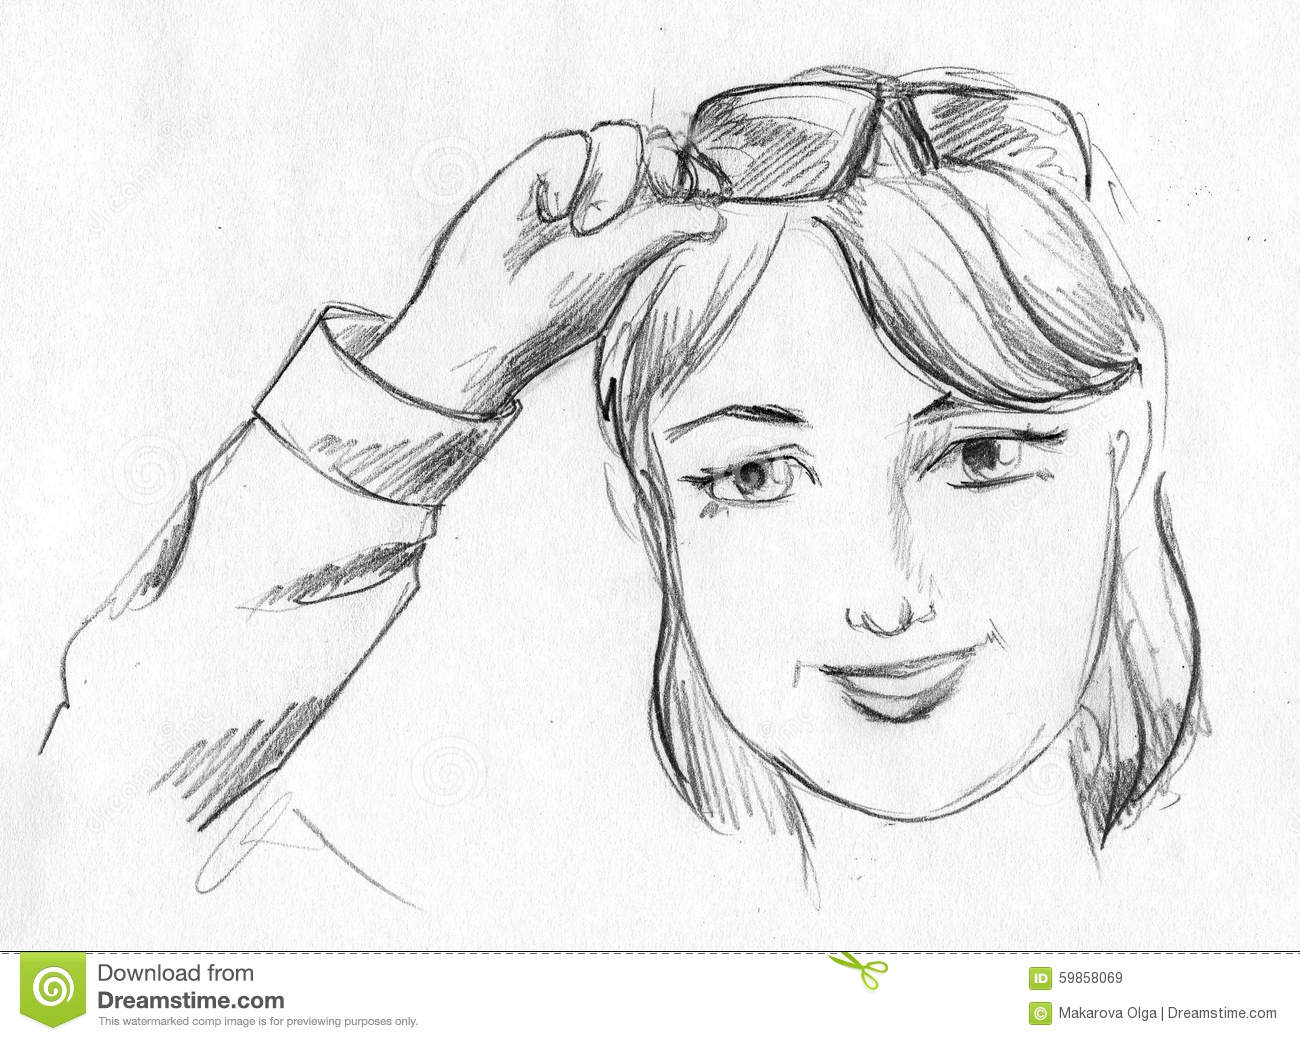 Hand drawn pencil sketch of a smiling girl raising her glasses up